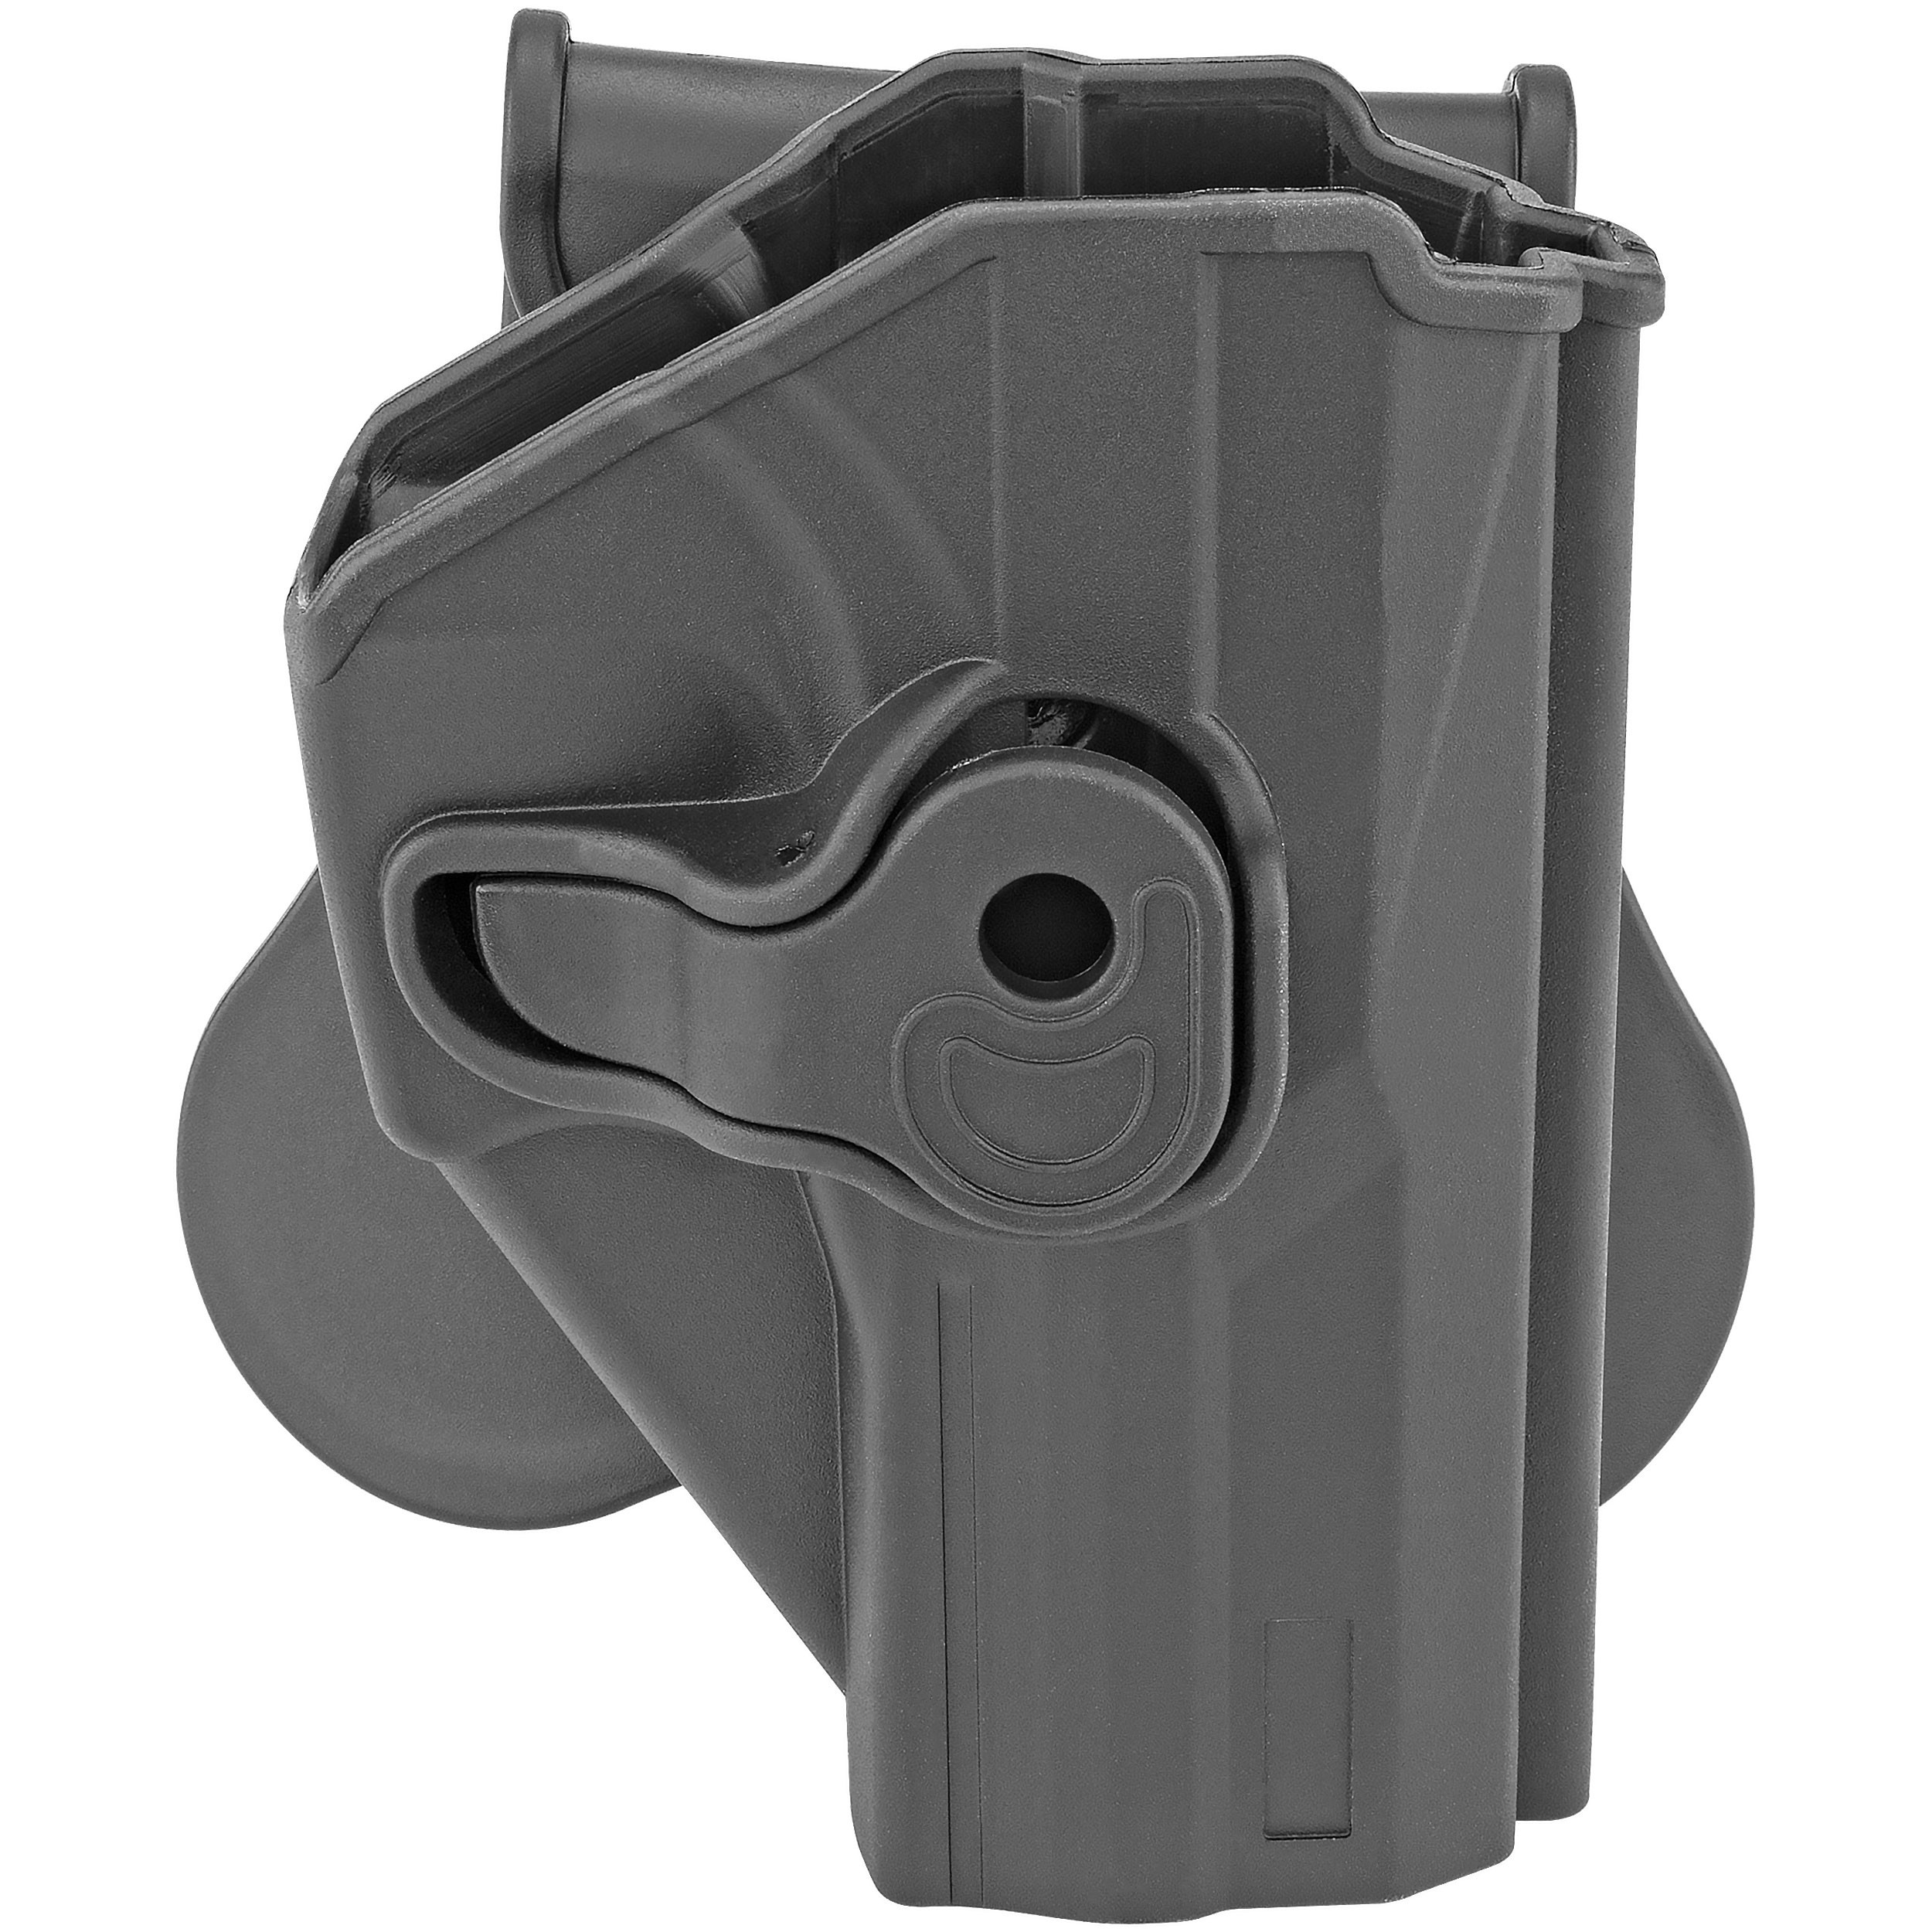 Fits H&K USP and H&K USP Compact Holster